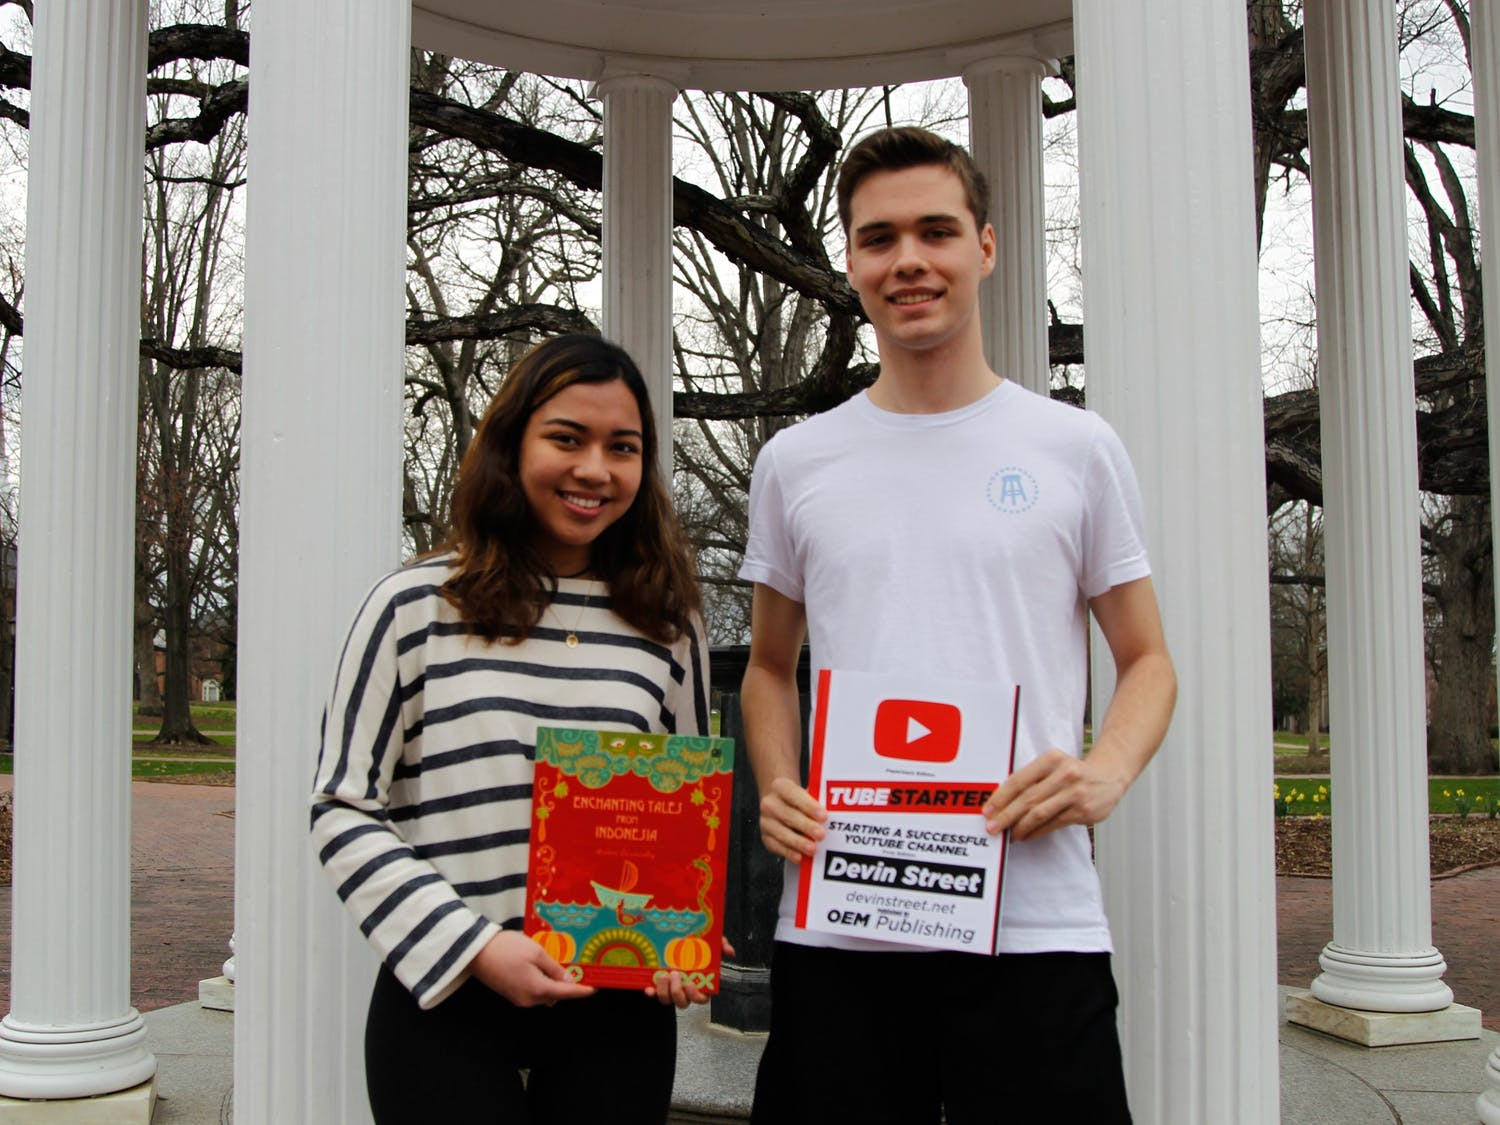 Devin Street, a first-year business major, poses for a portrait at the Old Well with his book, TubeStarter: Starting A Successful YouTube Channel, and Andari Deswandhy, a first-year global studies major, poses with her book, Enchanting Tales from Indonesia, on Feb. 26, 2020.